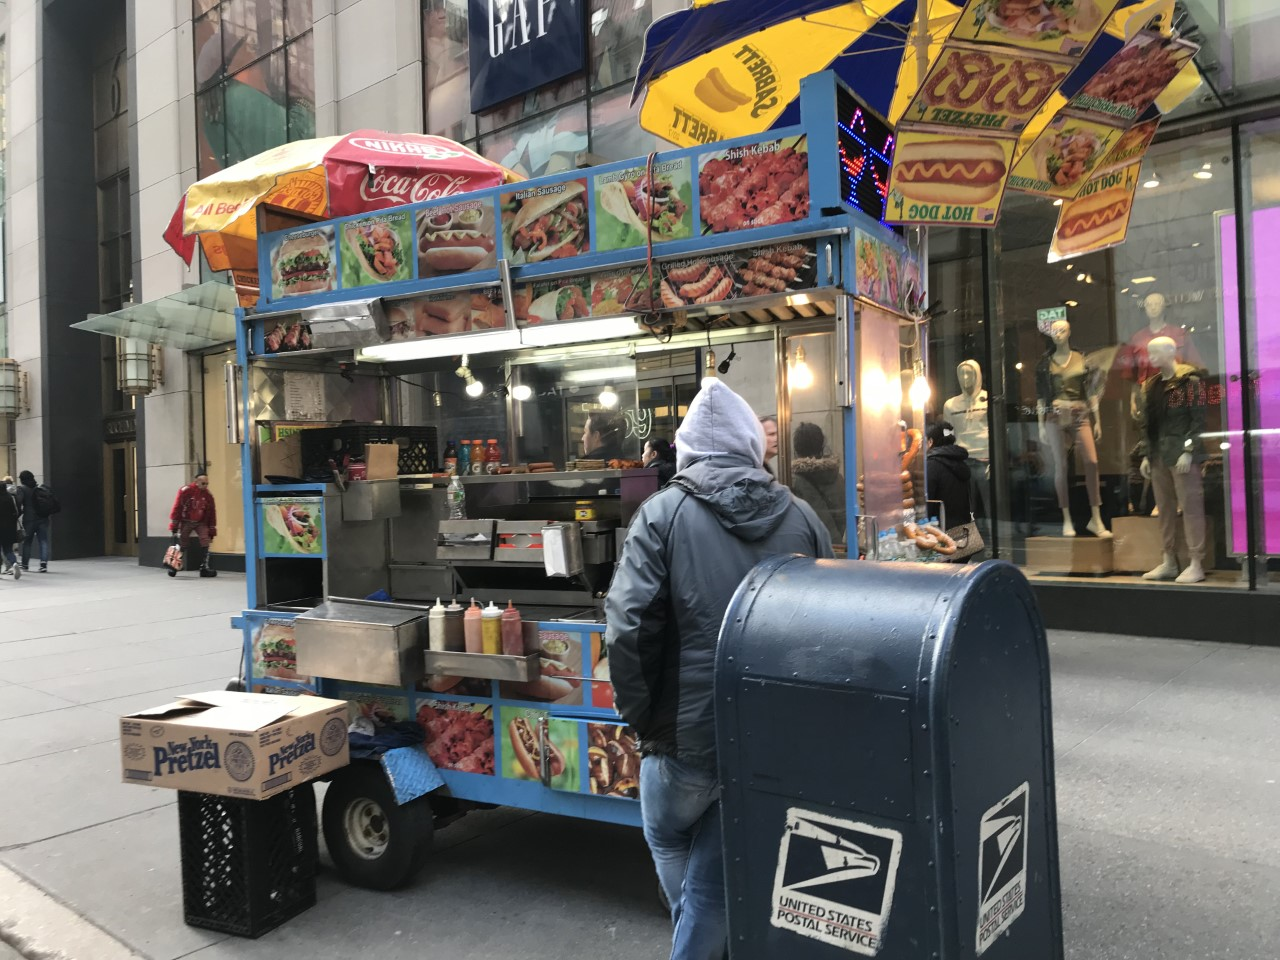 Street Food at NYC